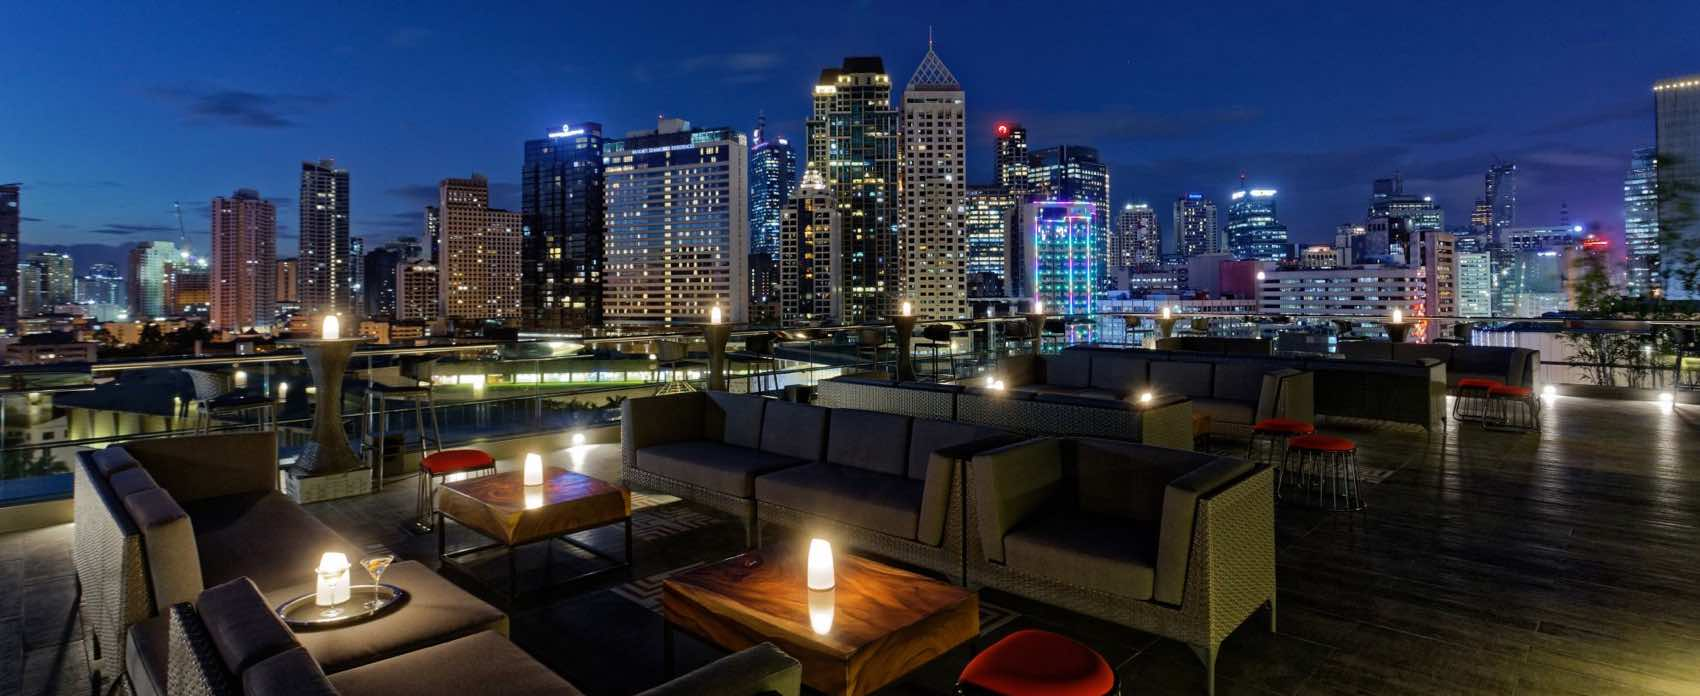 Best View: Mistral Rooftop Bar in Manila